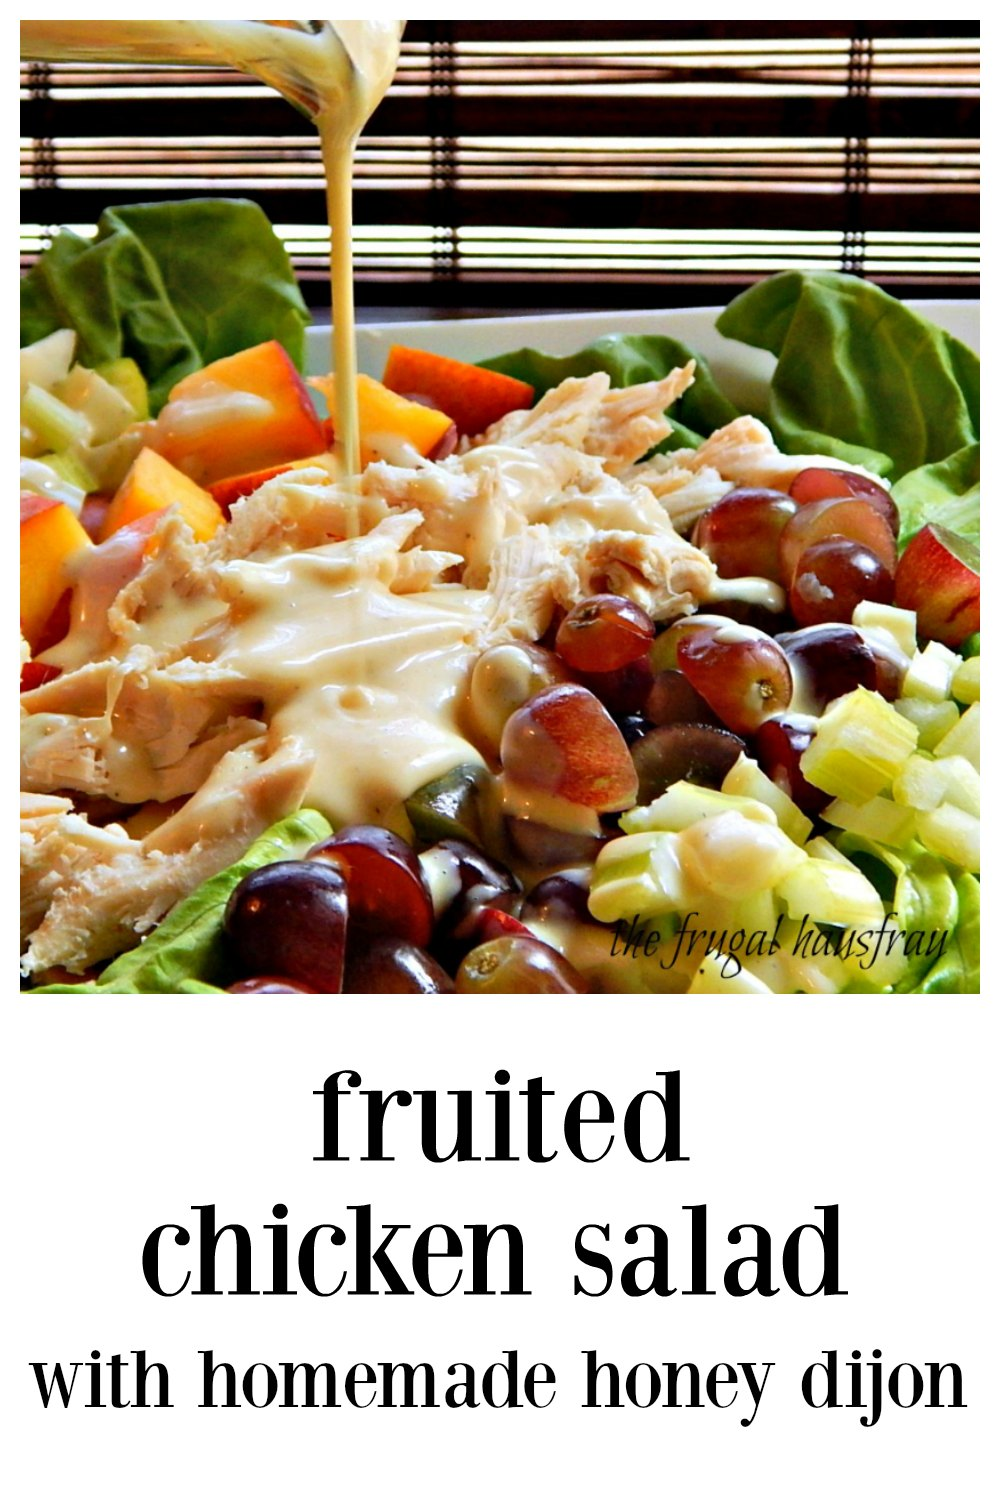 If there was such thing as a taste of summer, Fruited Chicken Salad with Honey Dijon is it! There's something for everyone & it's perfect on a hot day! #ChickenSalad #ChickenSaladFruit #ChickenSaladNectarinesGrapes #HoneyDijonDressing